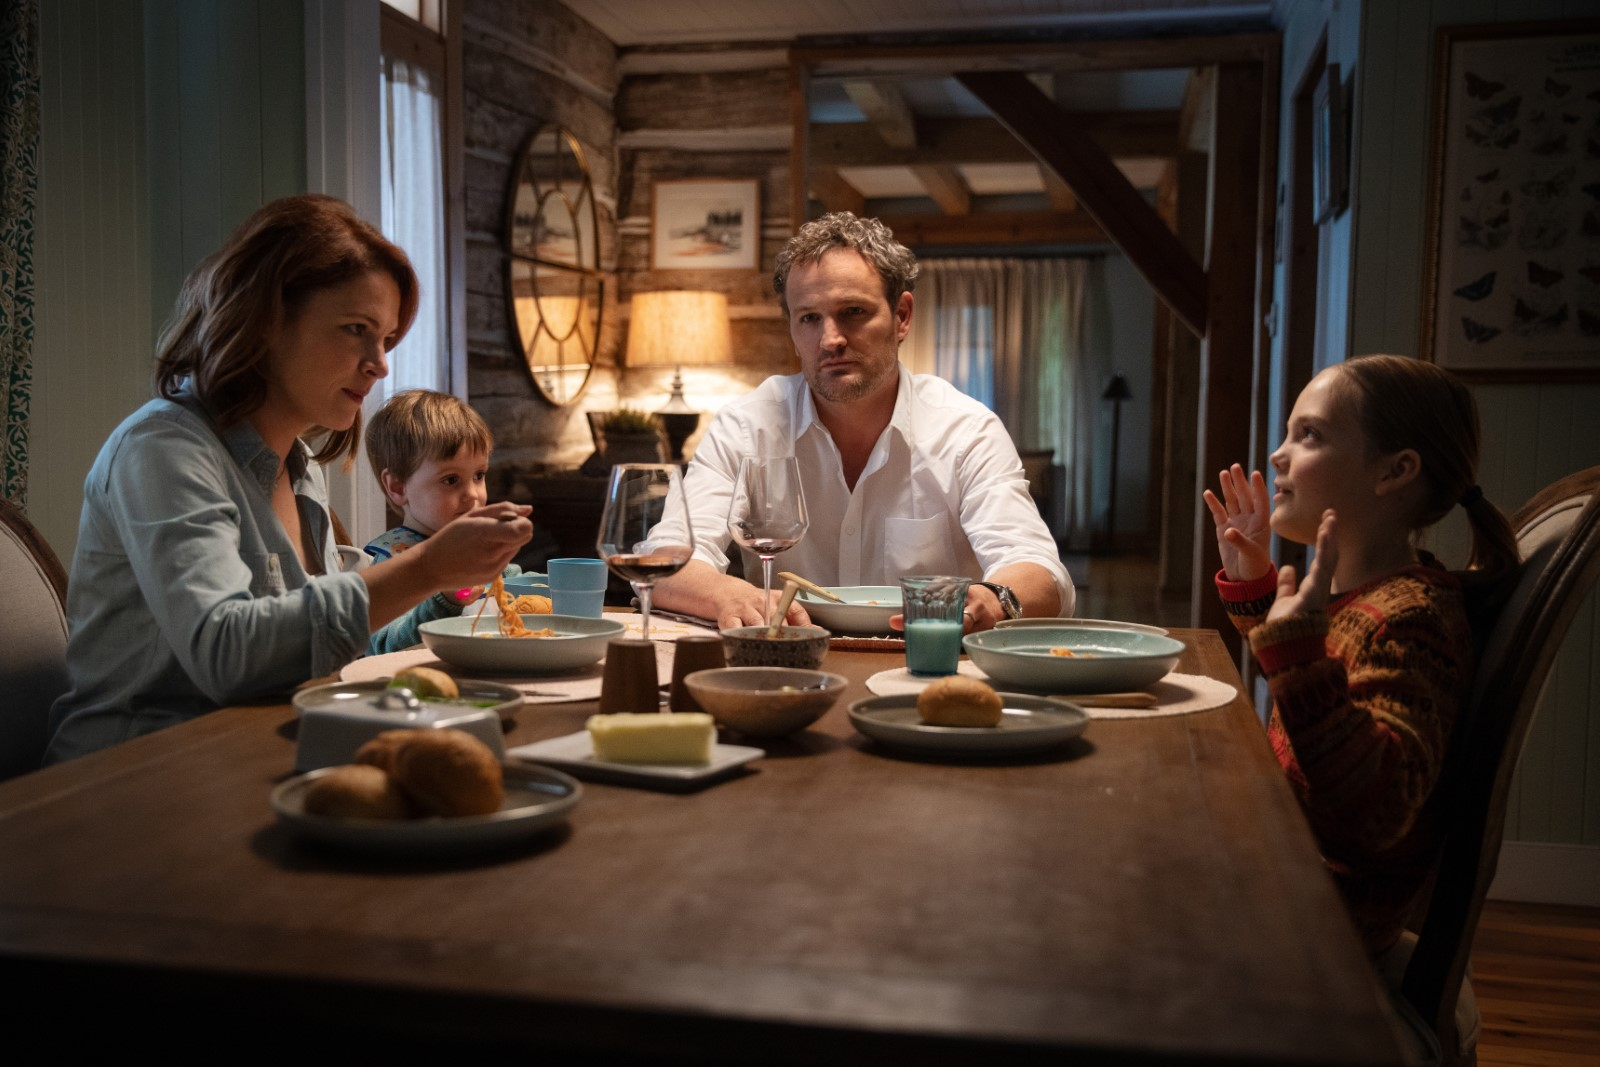 Left to right: Amy Seimetz as Rachel, Hugo Lavoie as Gage, Jason Clarke as Louis and Jeté Laurence as Ellie in PET SEMATARY, from Paramount Pictures.